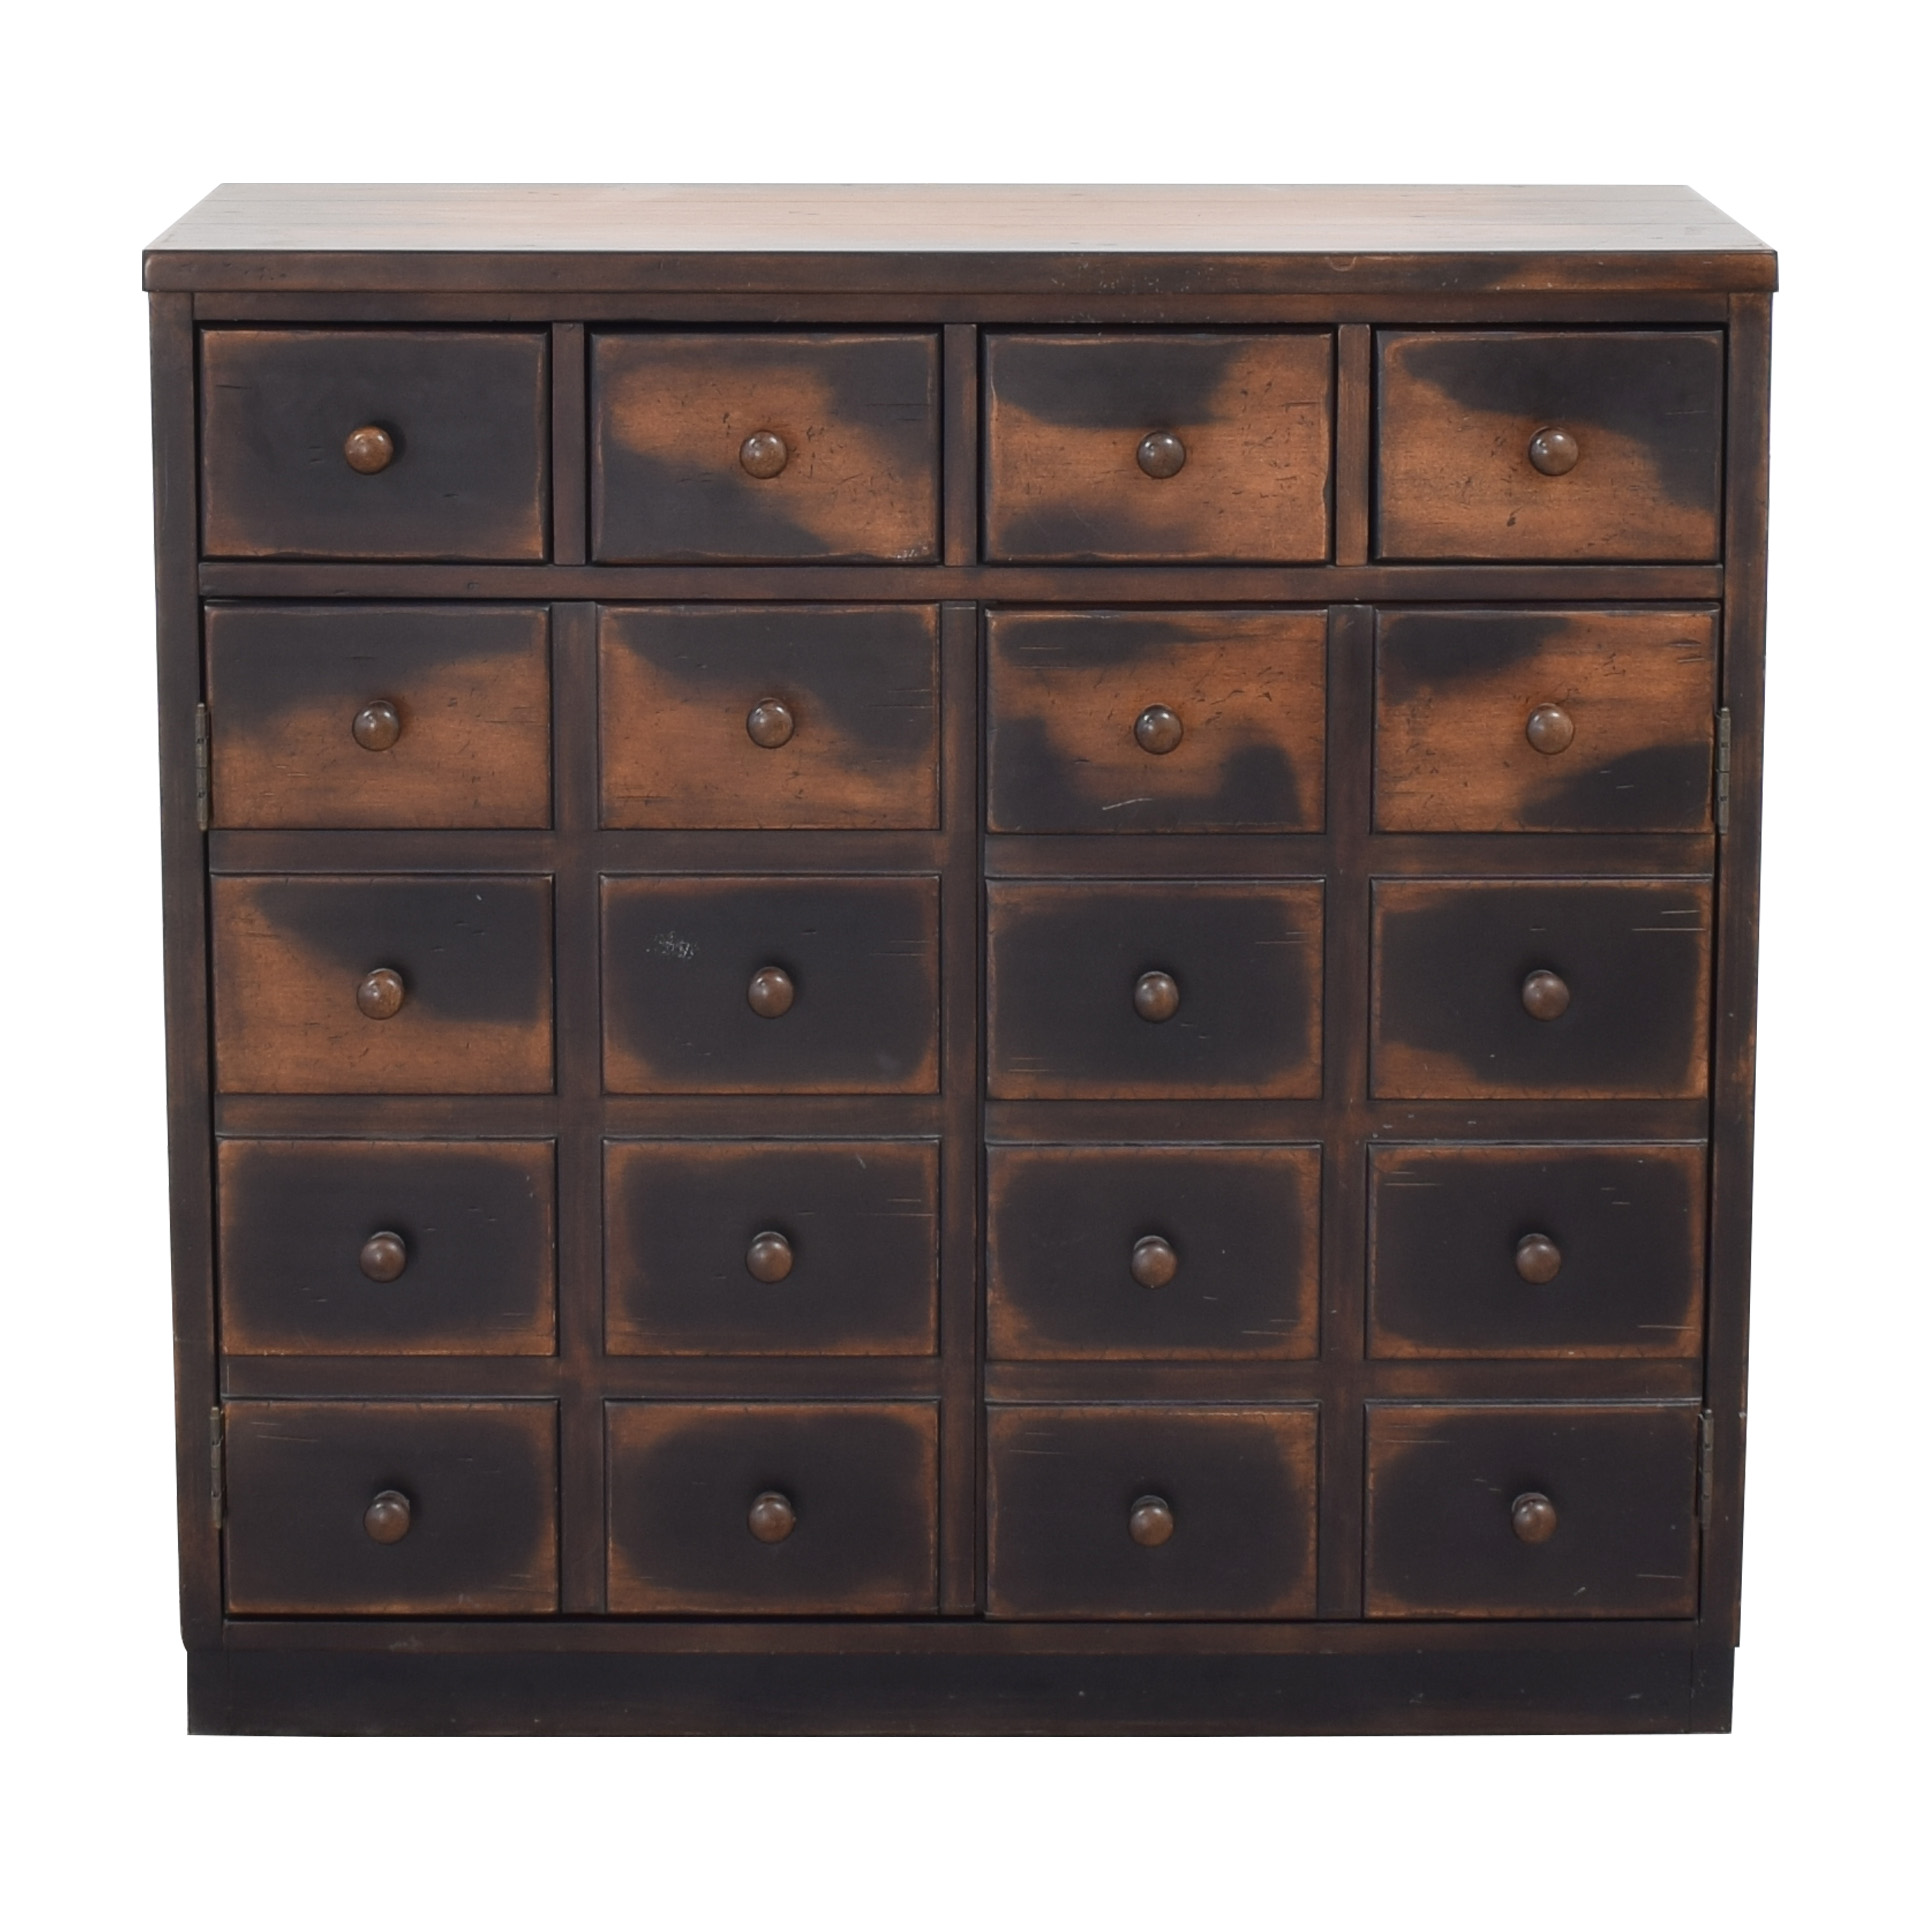 Pottery Barn Pottery Barn Andover Cabinet Cabinets & Sideboards